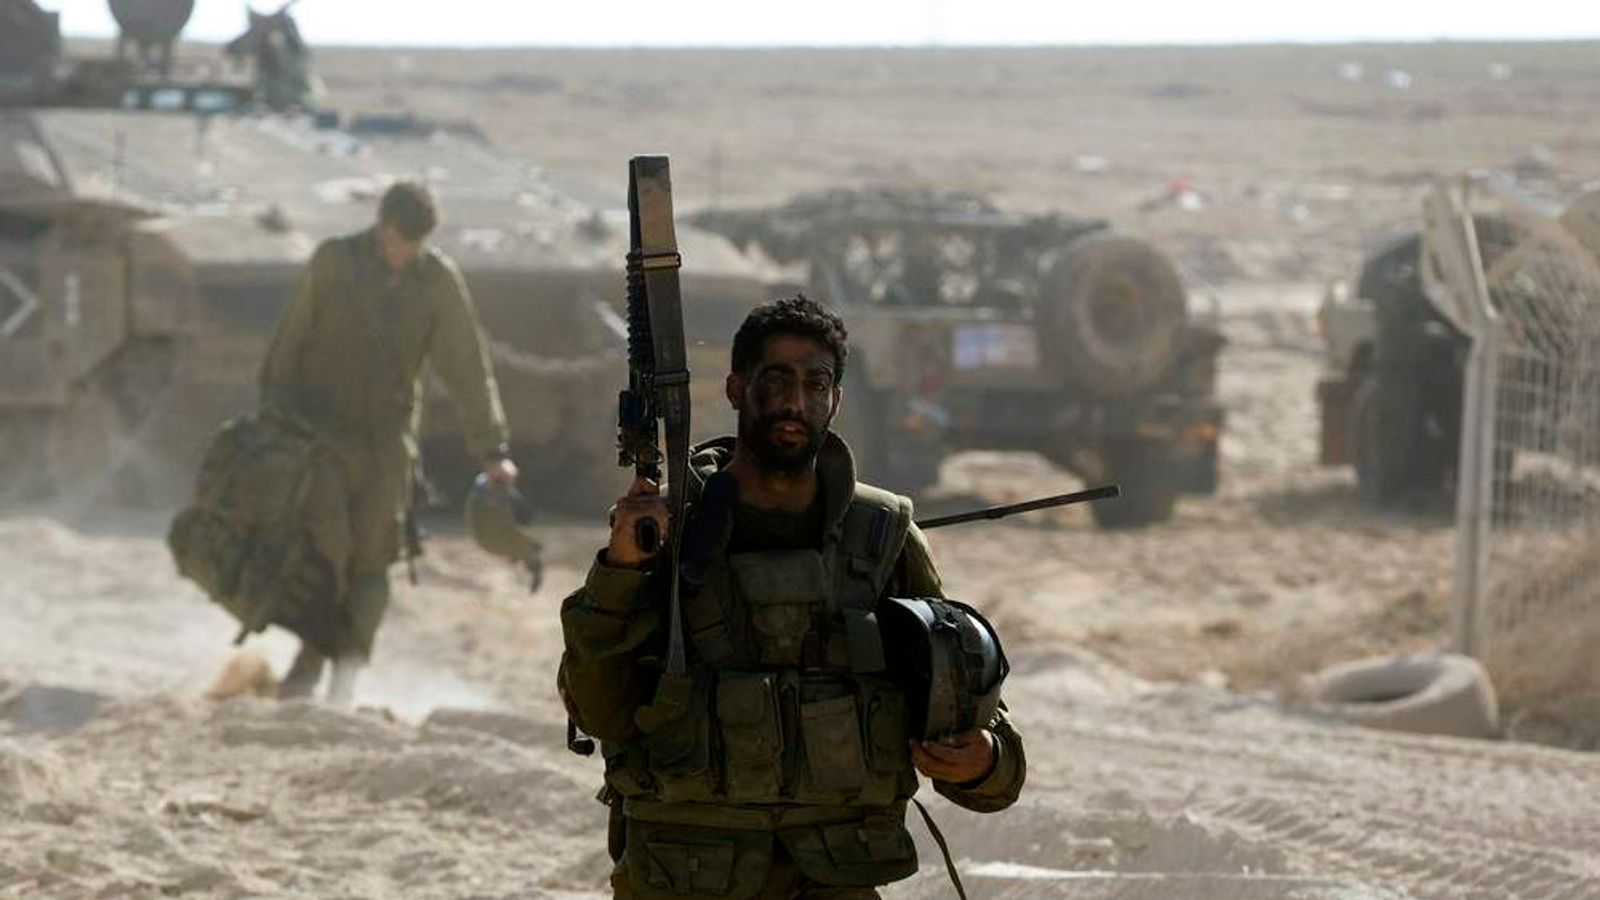 An Israeli soldier carries a weapon near the border with the Gaza Strip